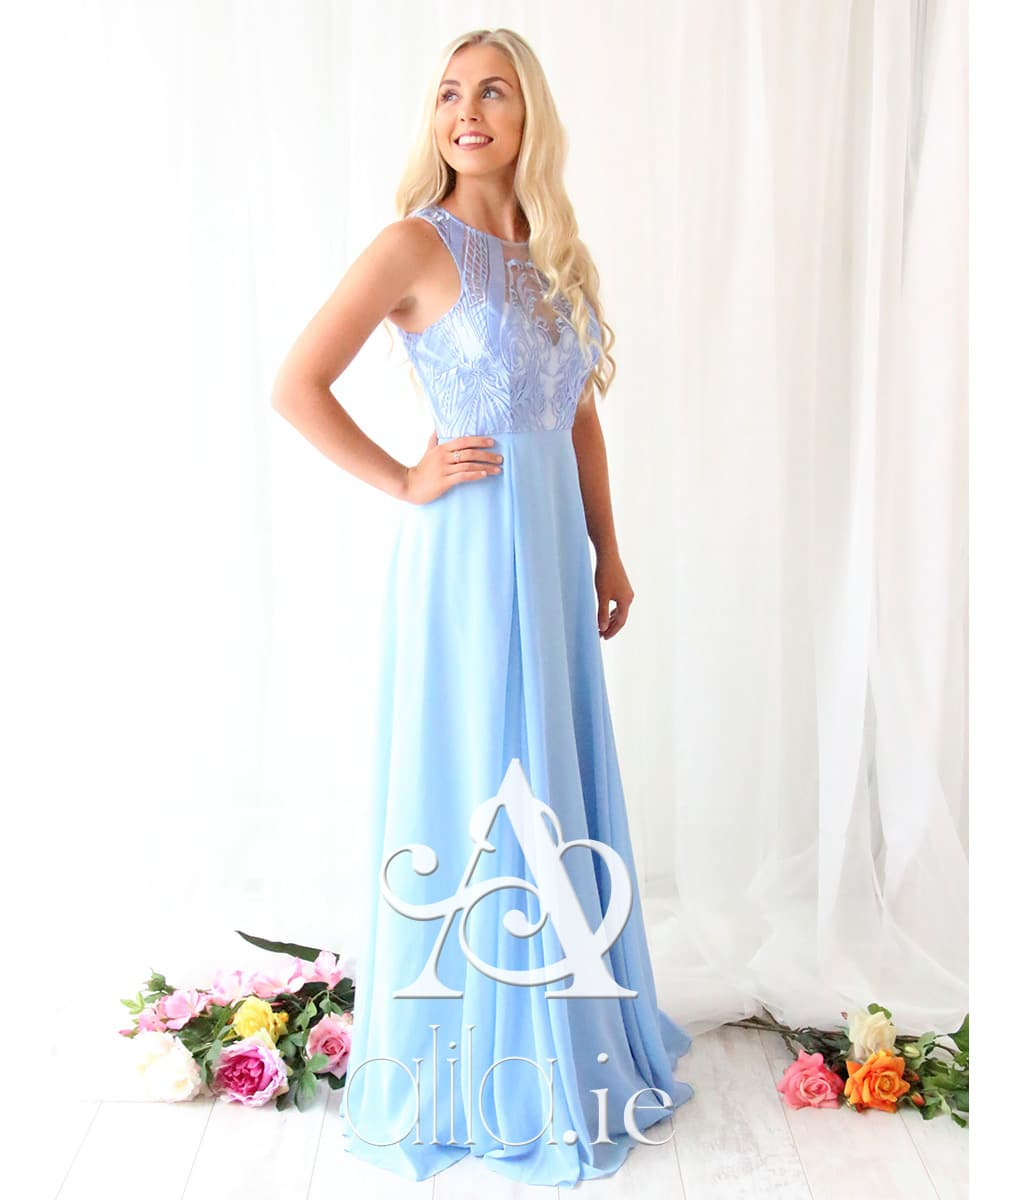 Alila-SkyBlue-Chiffon-Embroidered-Debs-Dress-Bariano